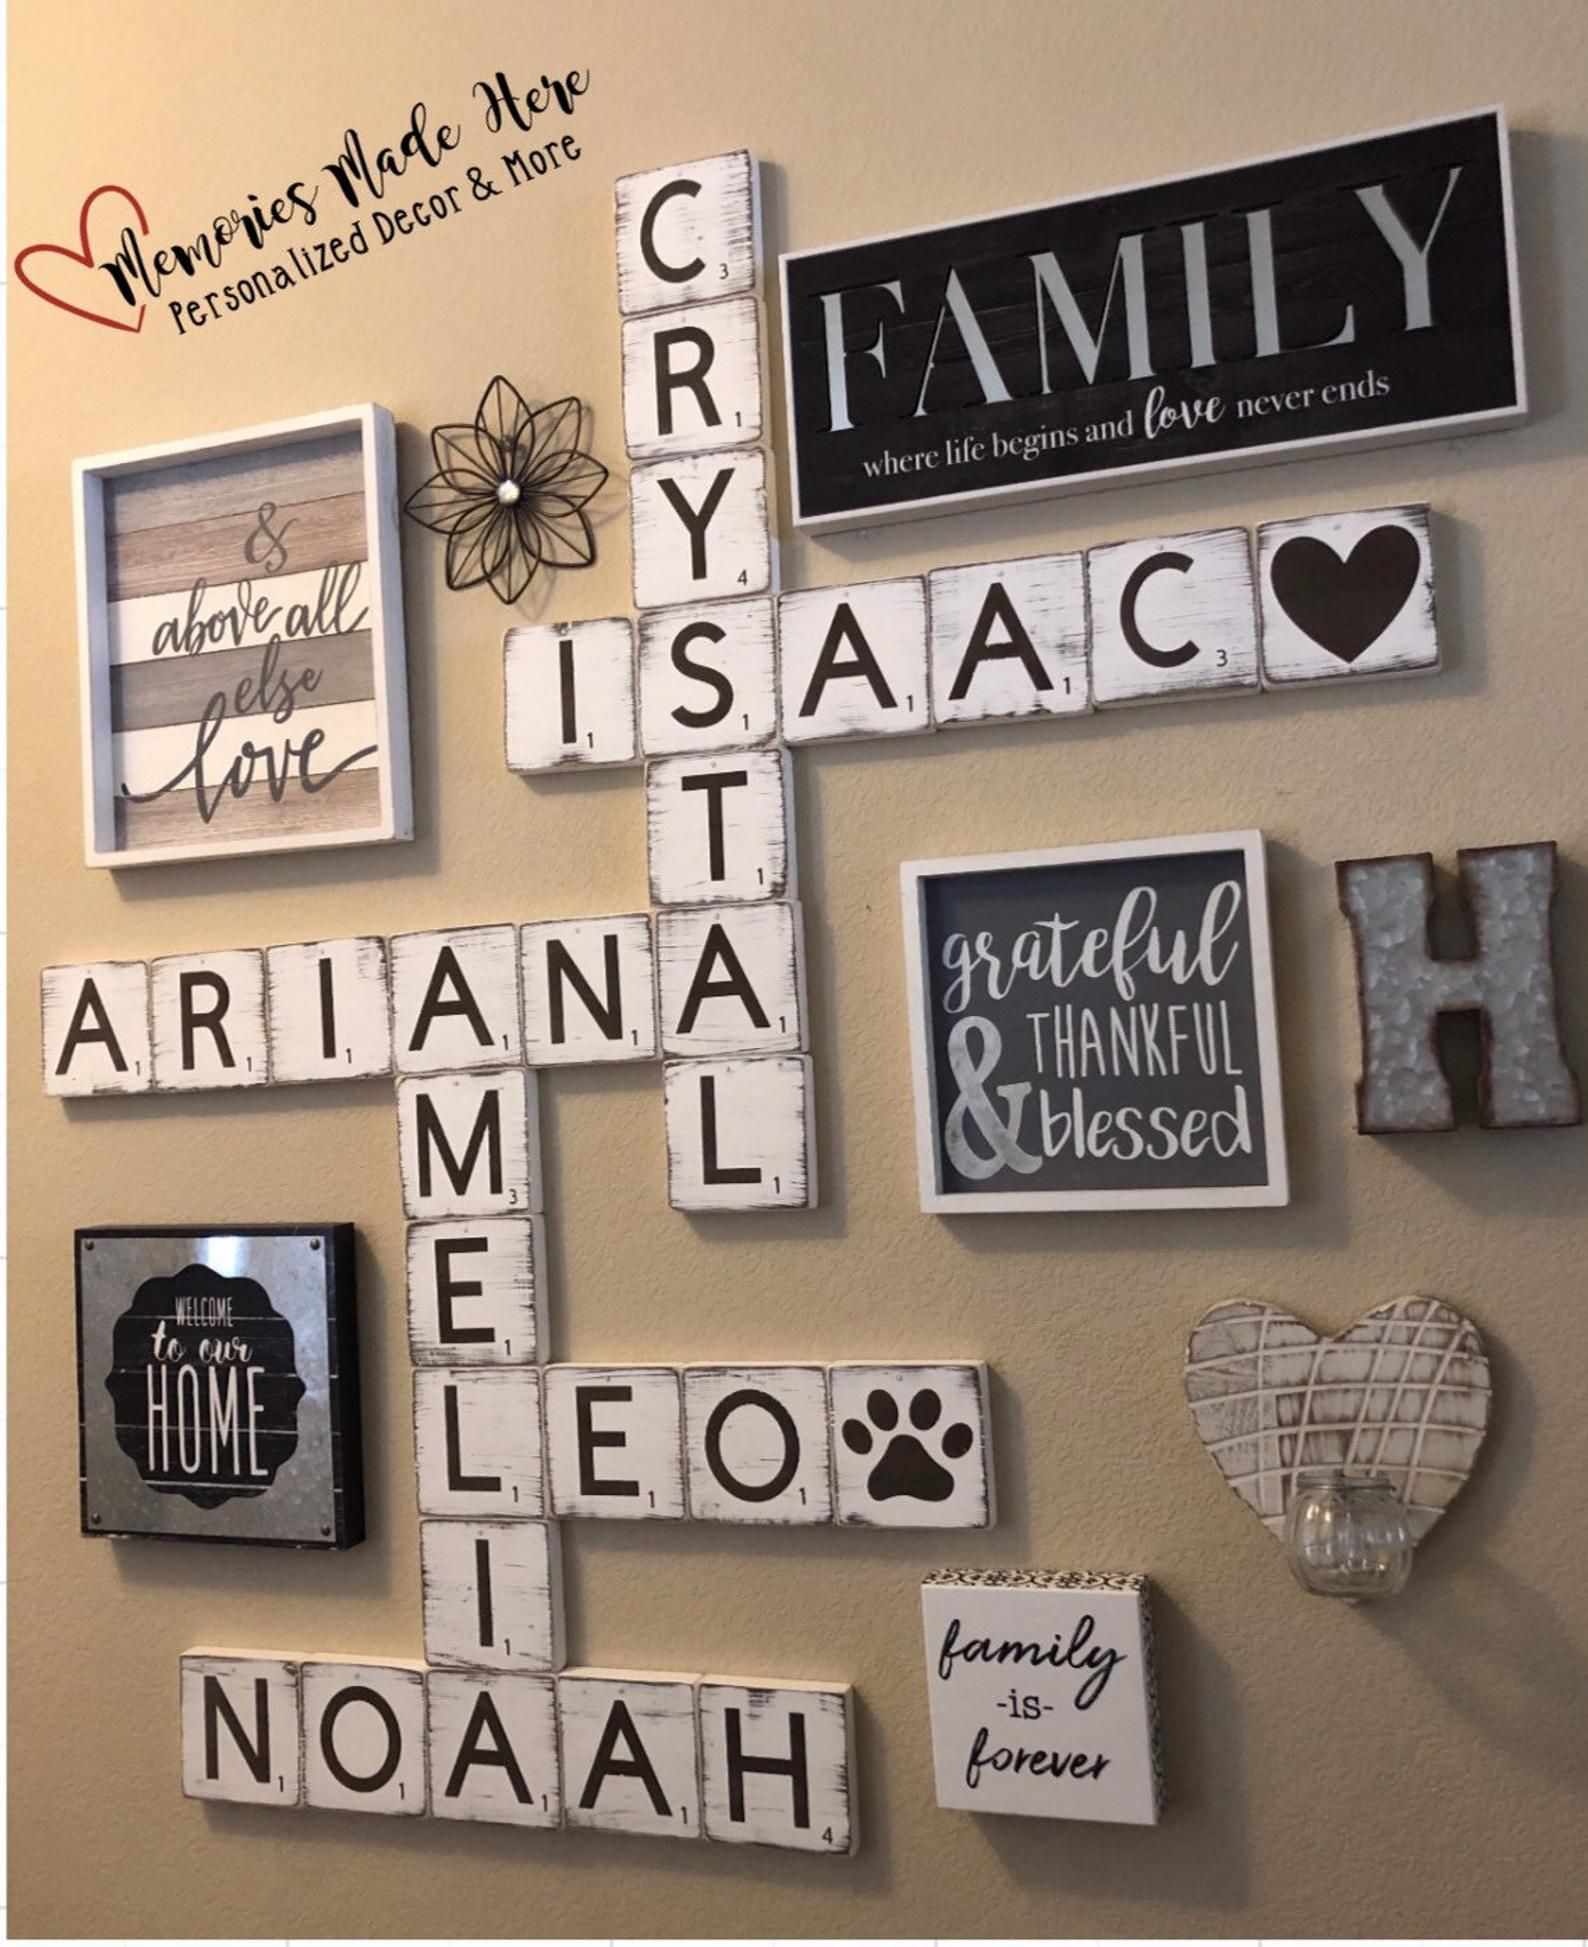 Large Scrabble Tiles Scrabble Tiles Scrabble Tiles Wall Art Large Scrabble Tiles For Wall Large Scrabble Tiles Set Scrabble Tile Wall Art Scrabble Tiles Wall Scrabble Wall Art